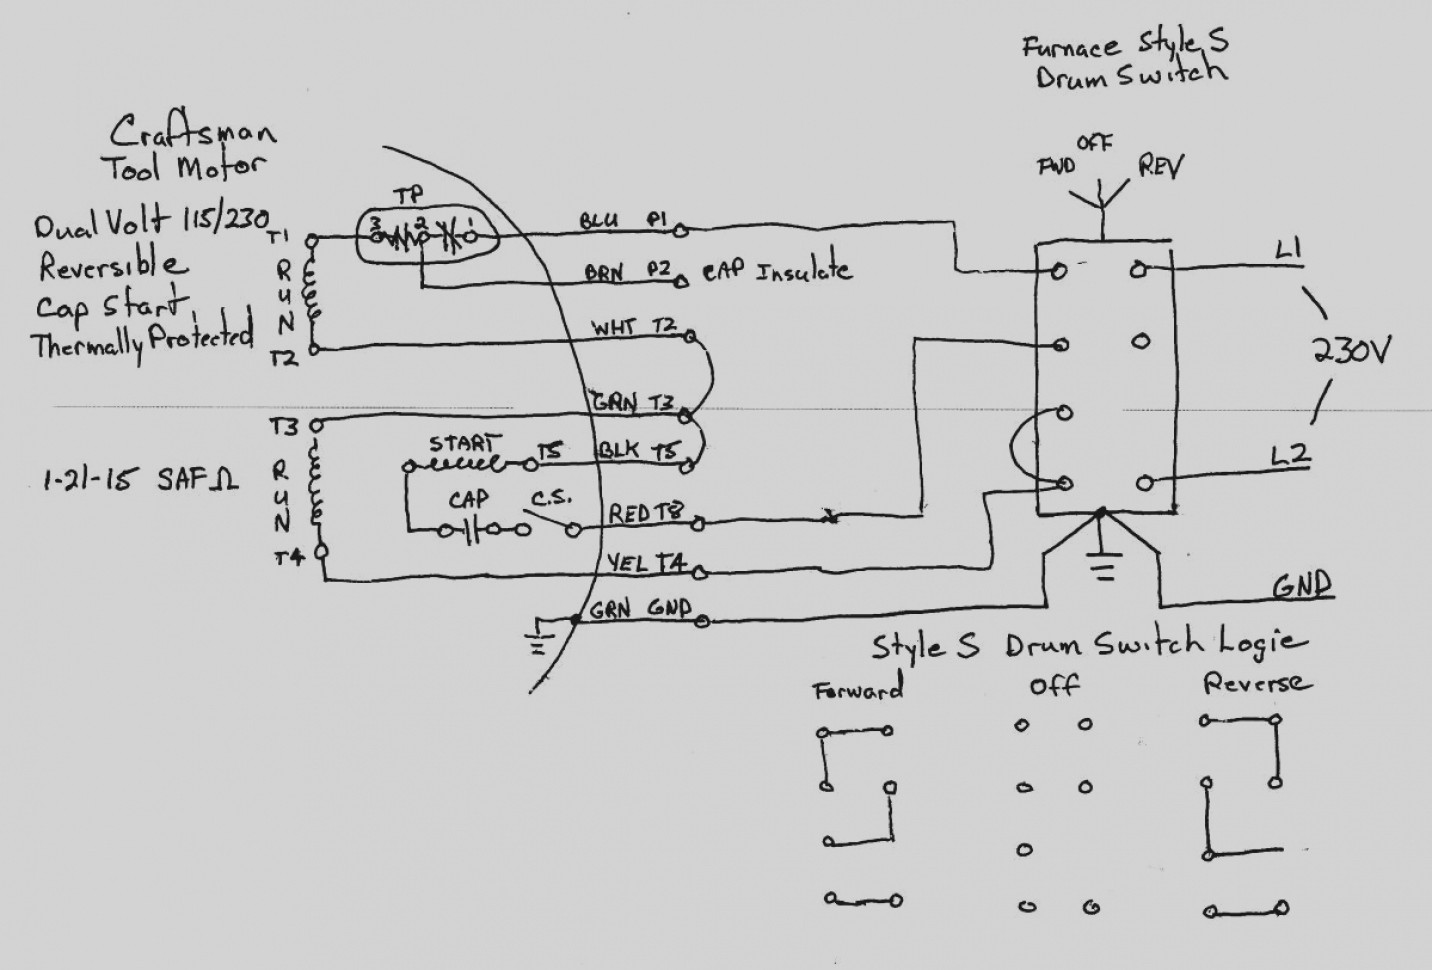 Buck Boost Transformer 208 to 240 Wiring Diagram Unique | Wiring ...